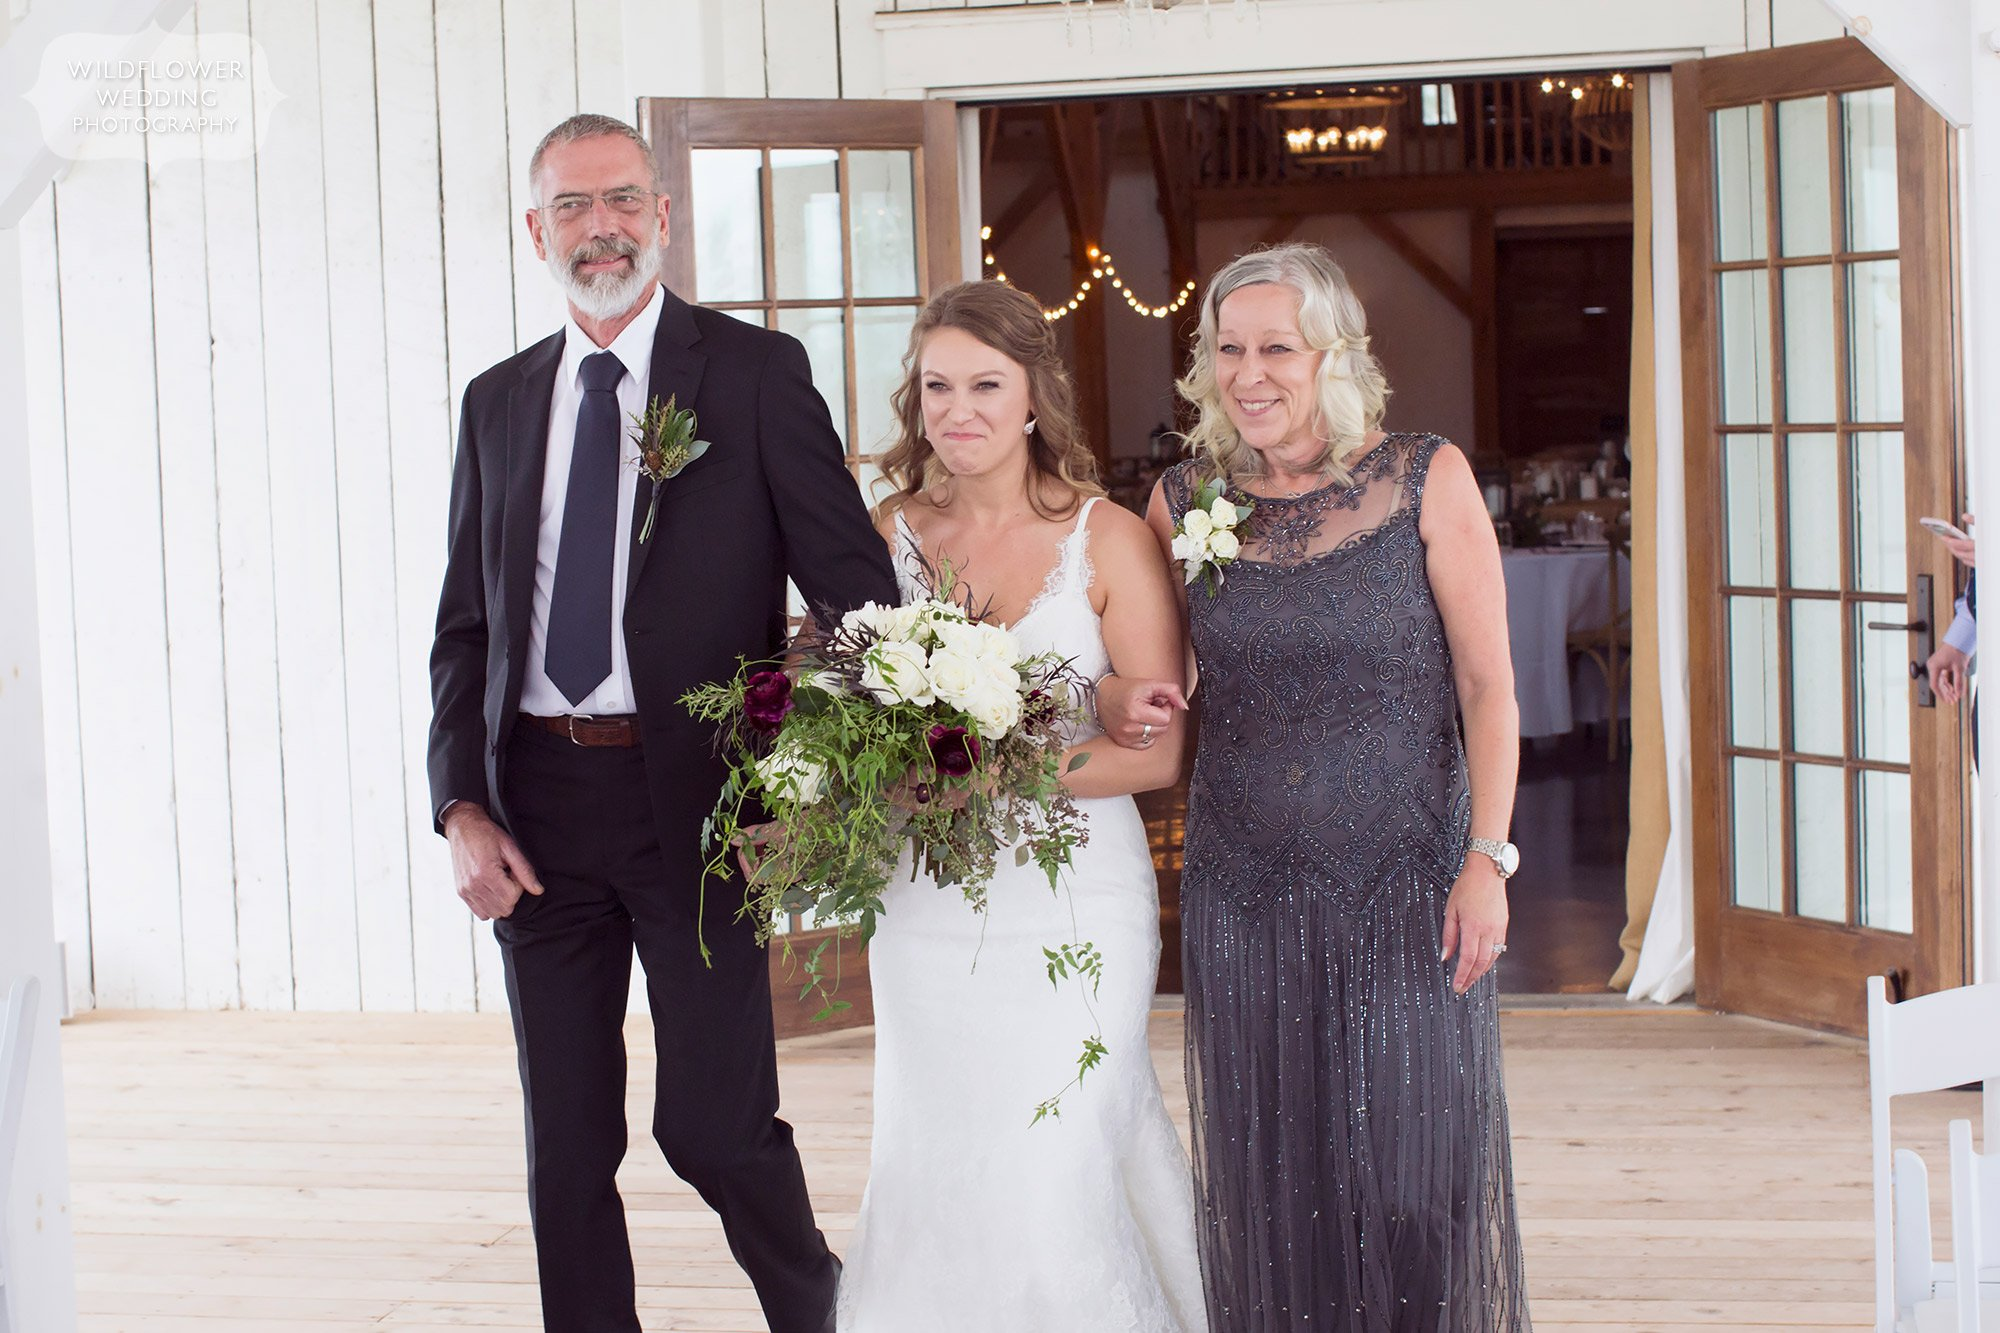 The bride walks into the ceremony with her parents at this Blue Bell Farm wedding in November.